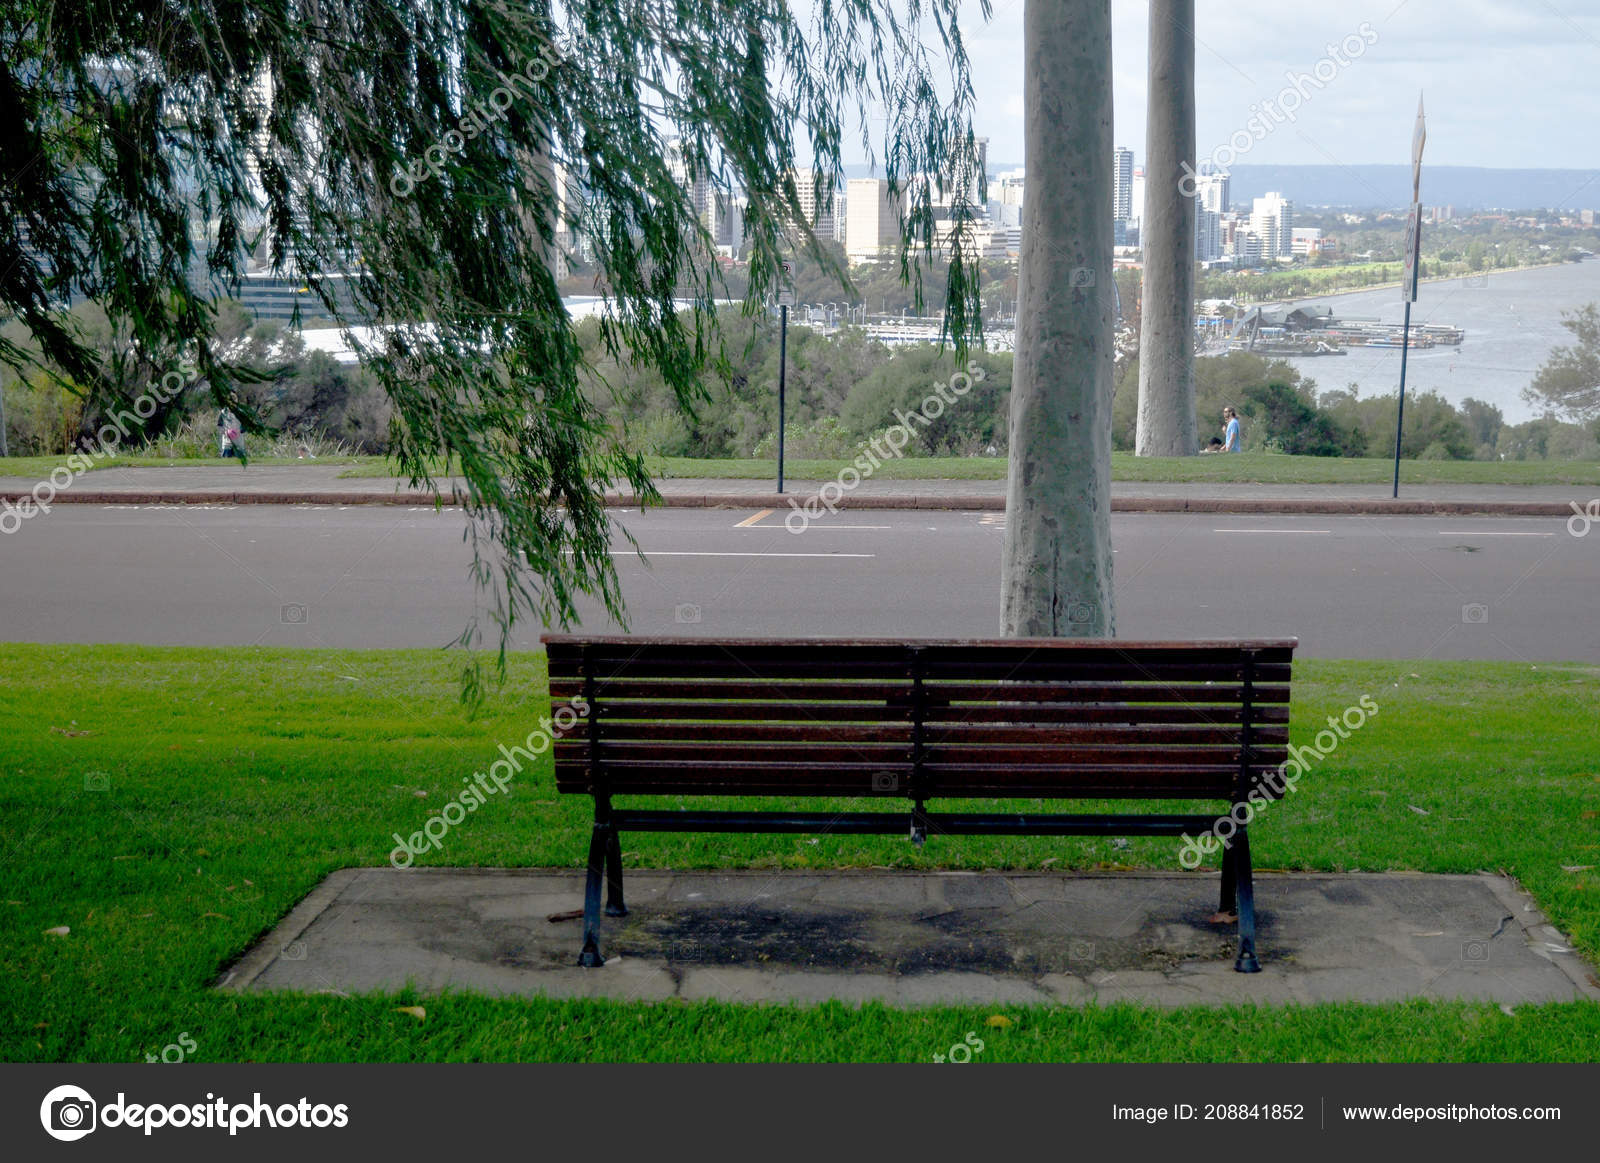 Garden Bench Australia Wooden Bench Garden Viewpoint Cityscape Perth City Kings Park